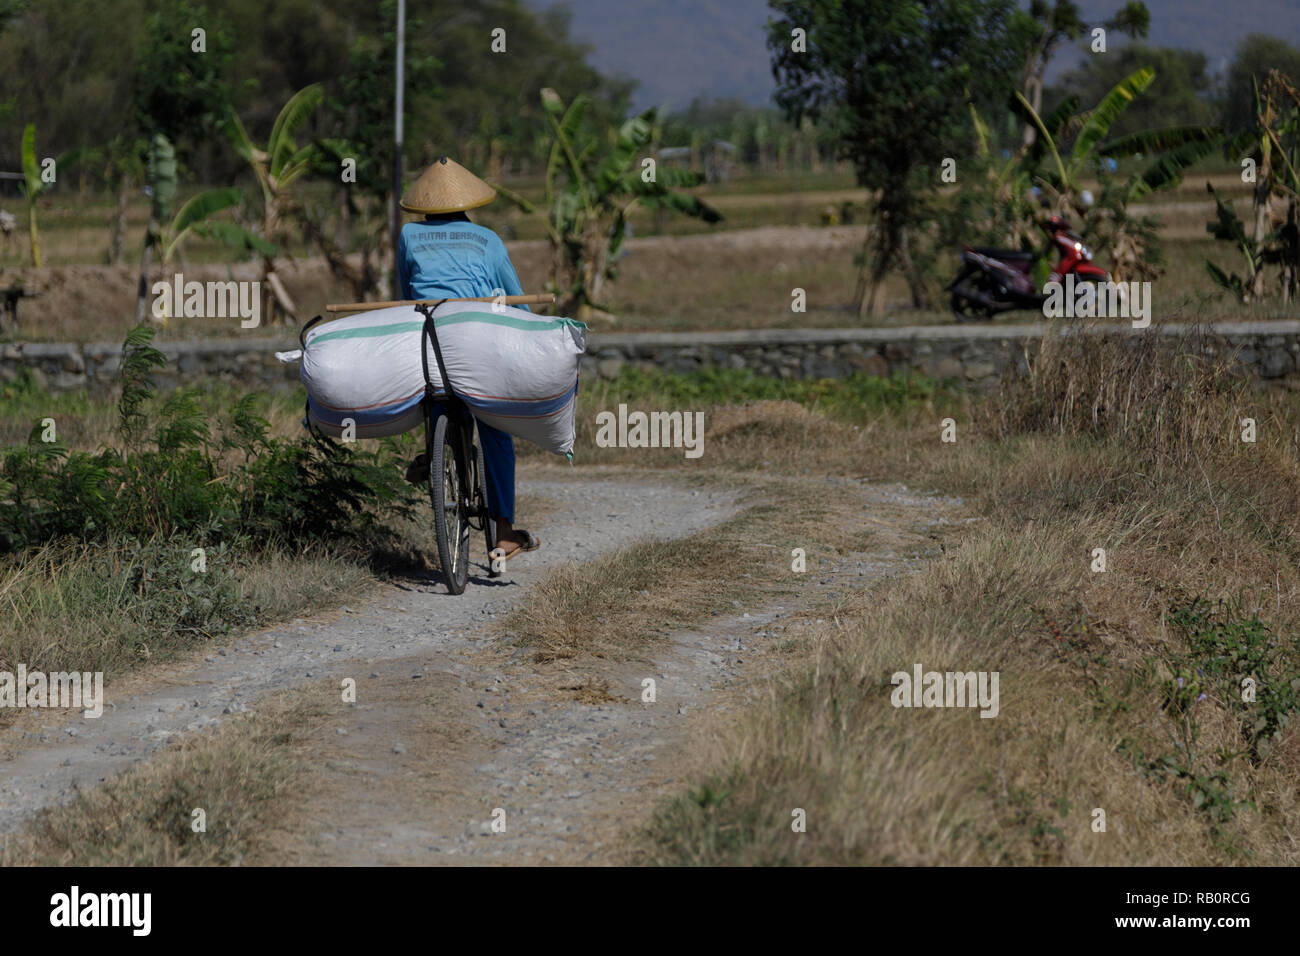 A local woman riding a bike and carrying a large bag of rice in Java, Indonesia. - Stock Image